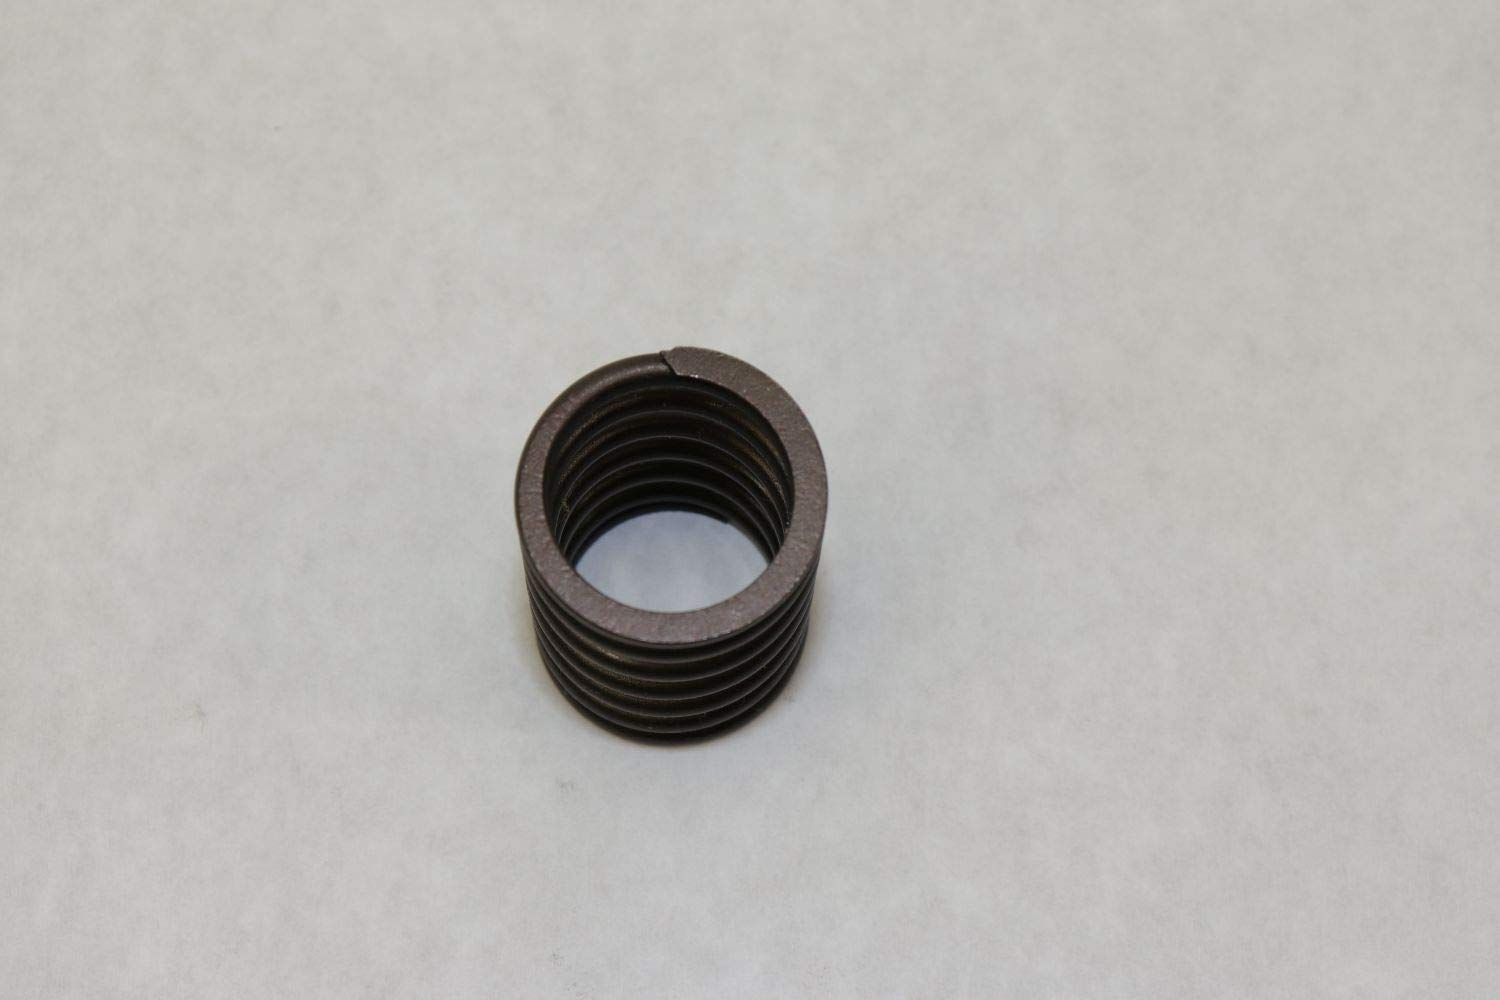 Fits Perkins 3.152 Valve Spring New 731154M1 0780006